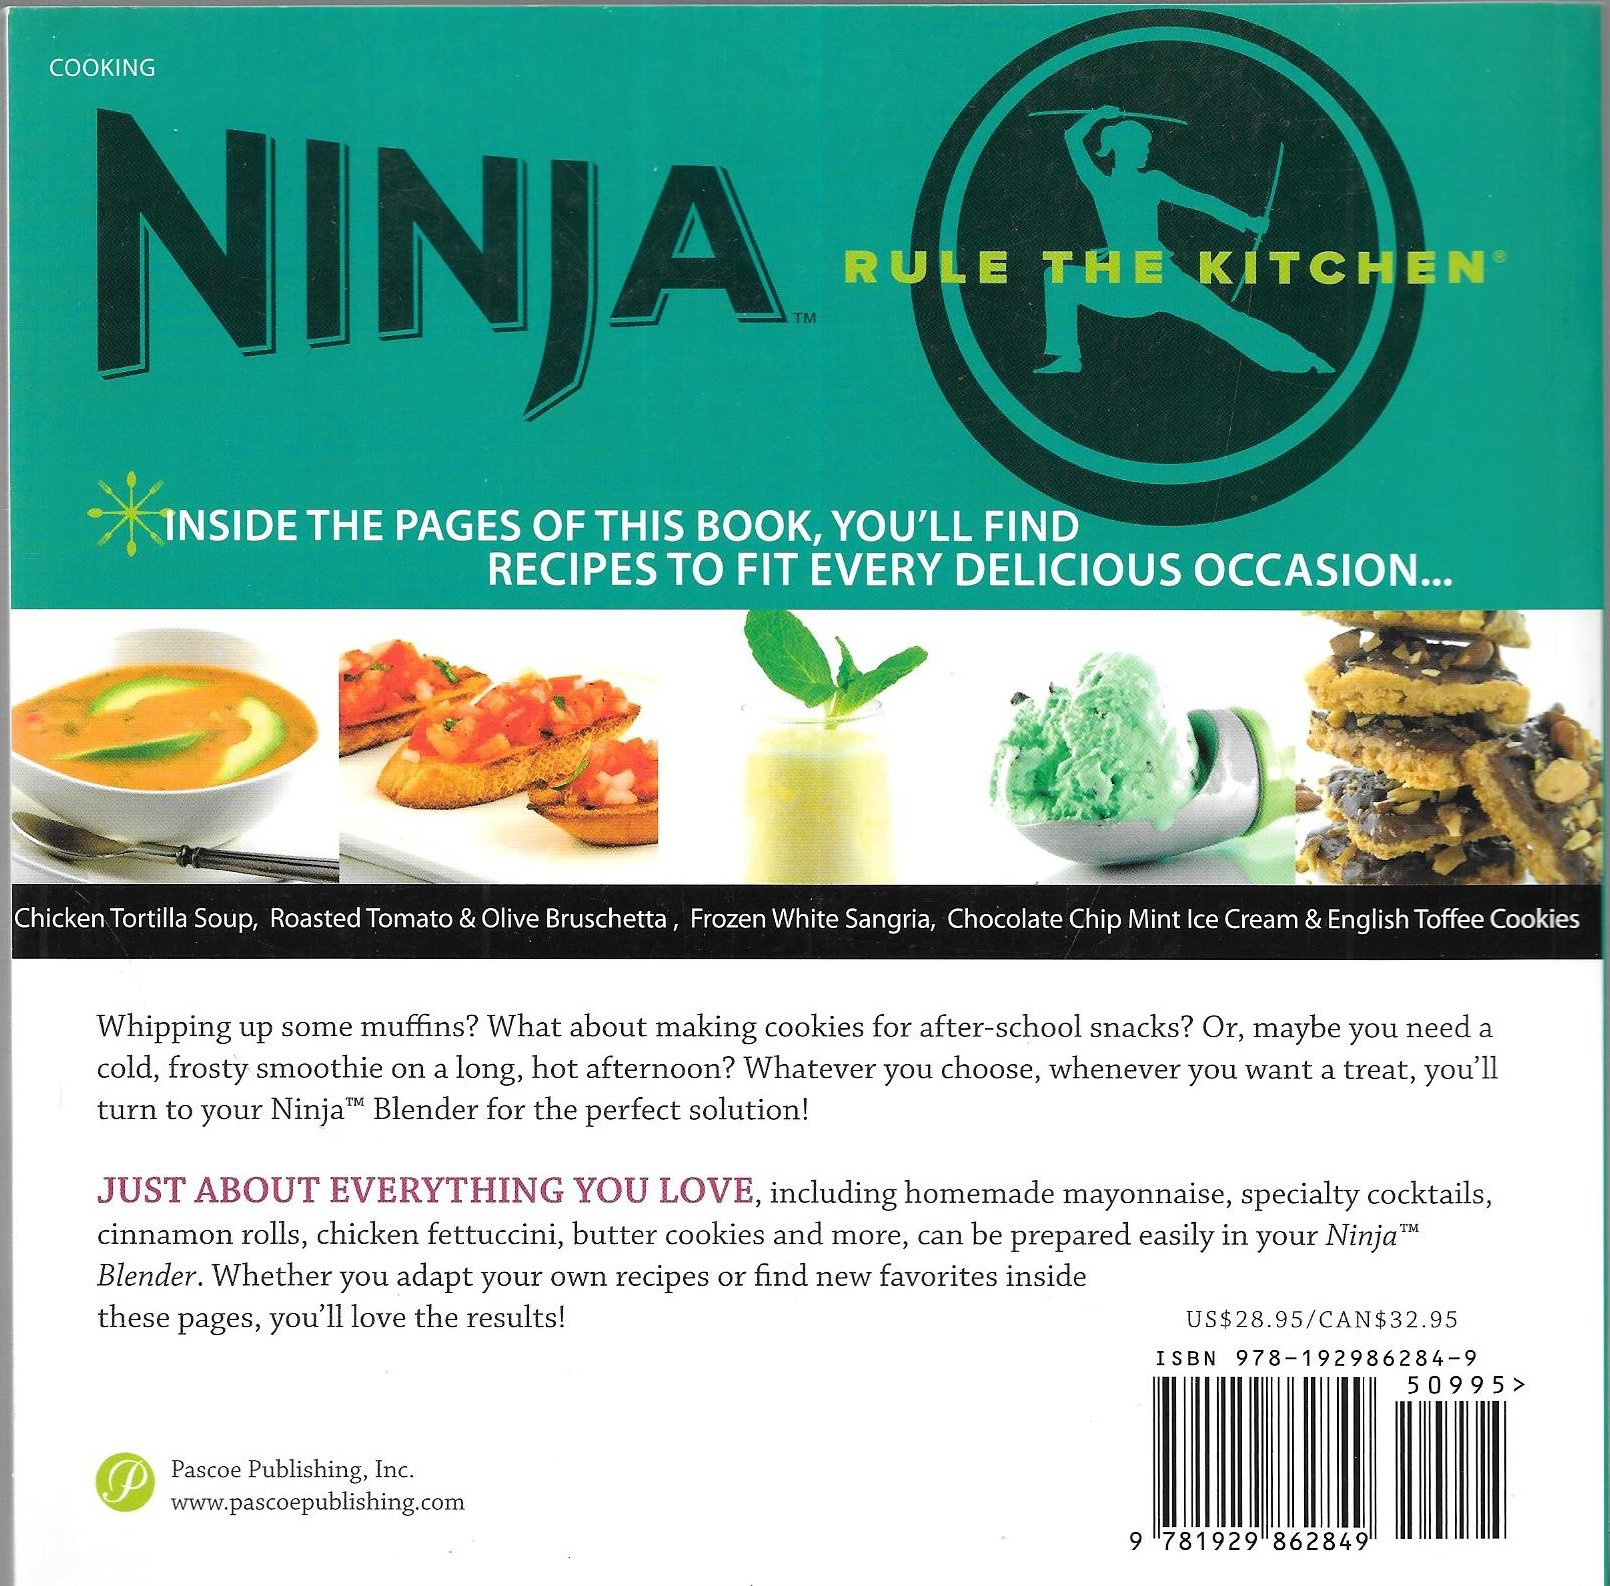 Ninja Blender Cookbook Breakthrough Blending! 150 Delicious Recipe ...